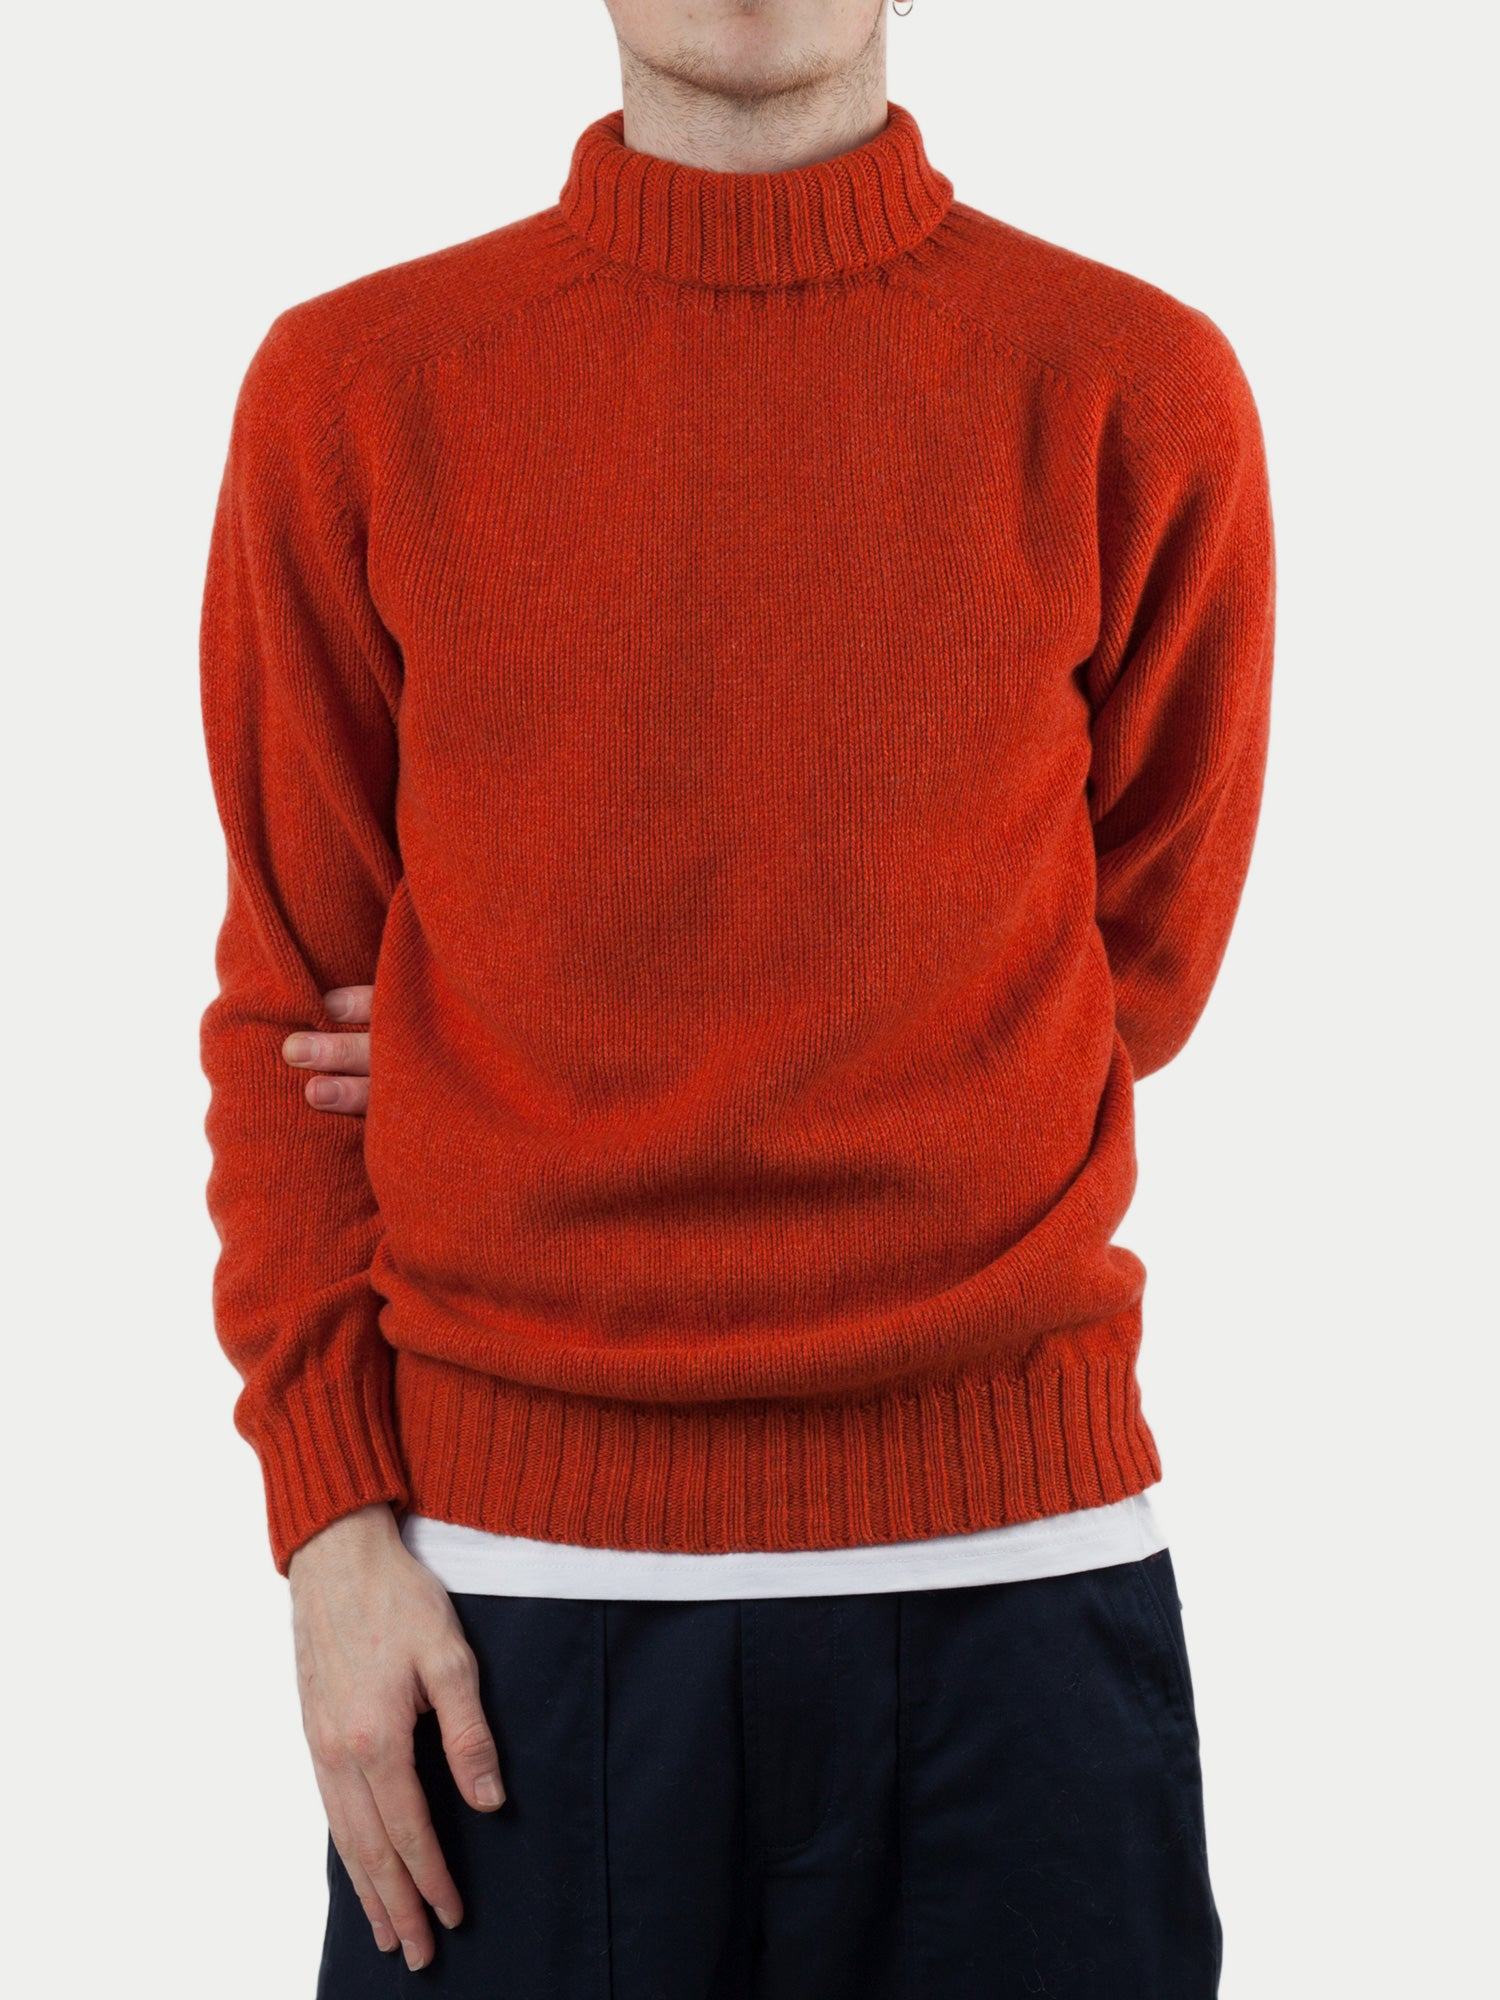 SIXES Delaney Roll Neck Jumper (Furnace Orange) m1